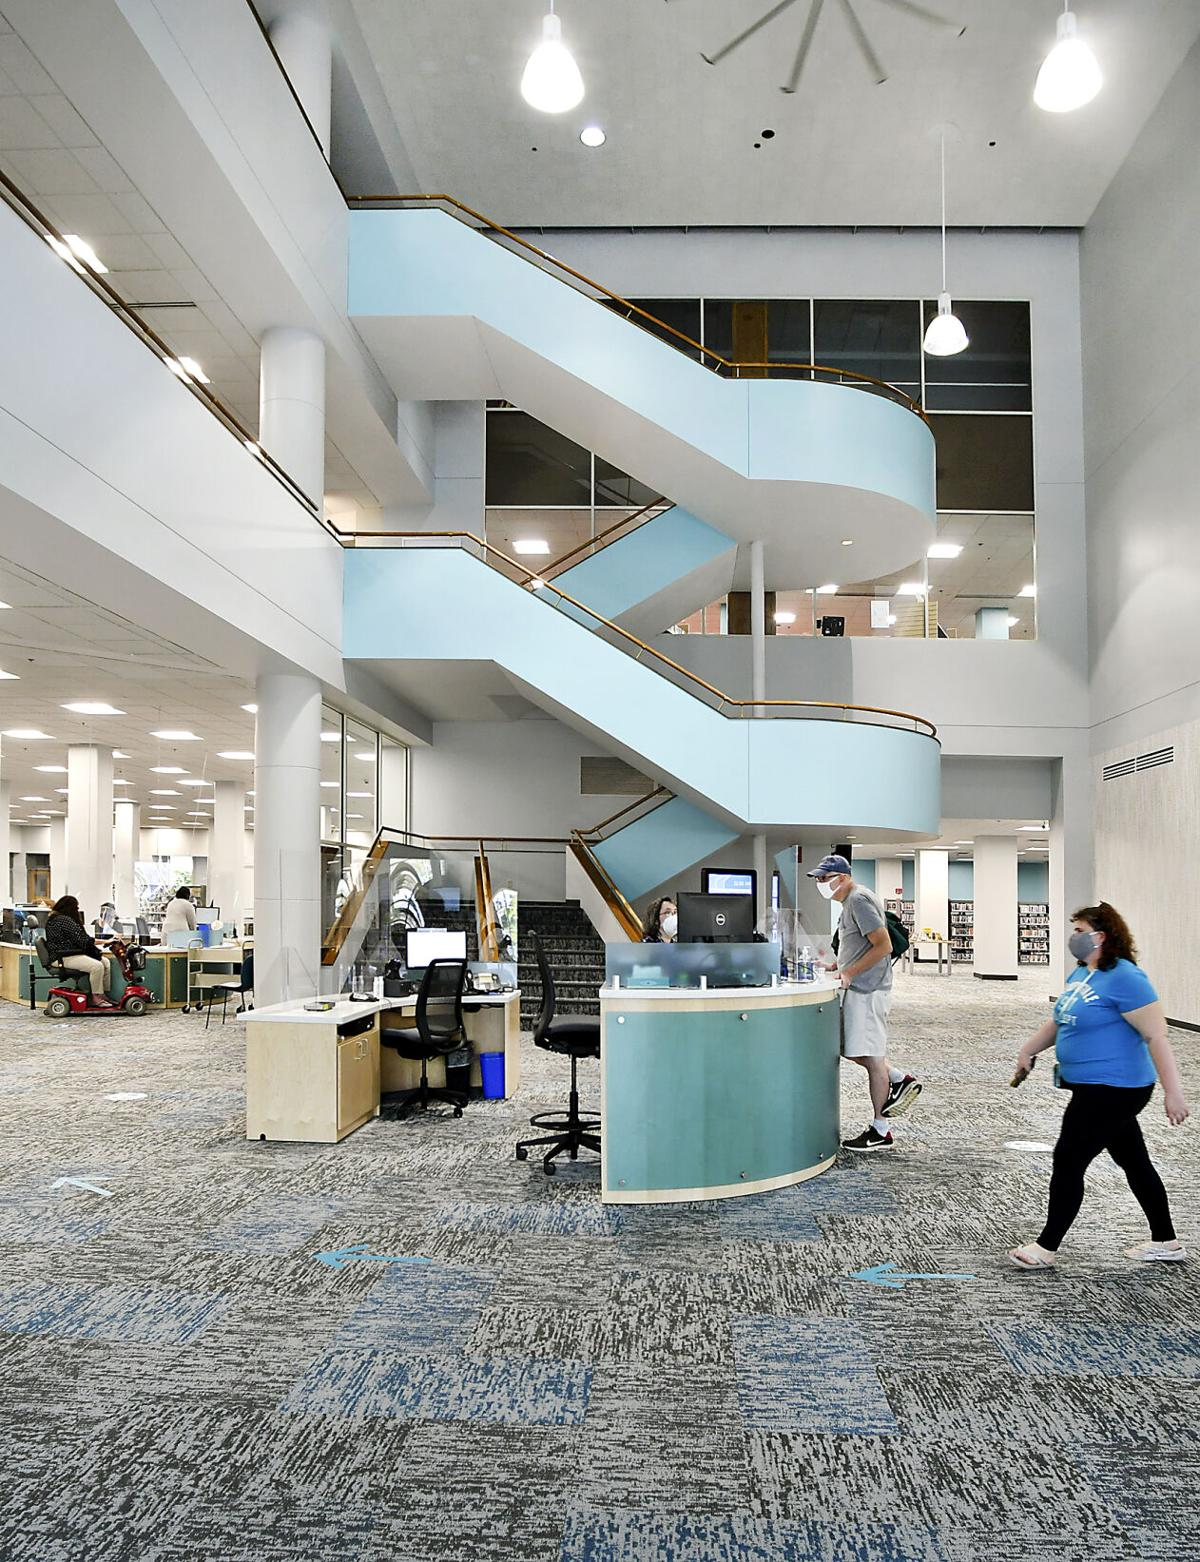 New look at Anderson library awaiting a public unwrapping